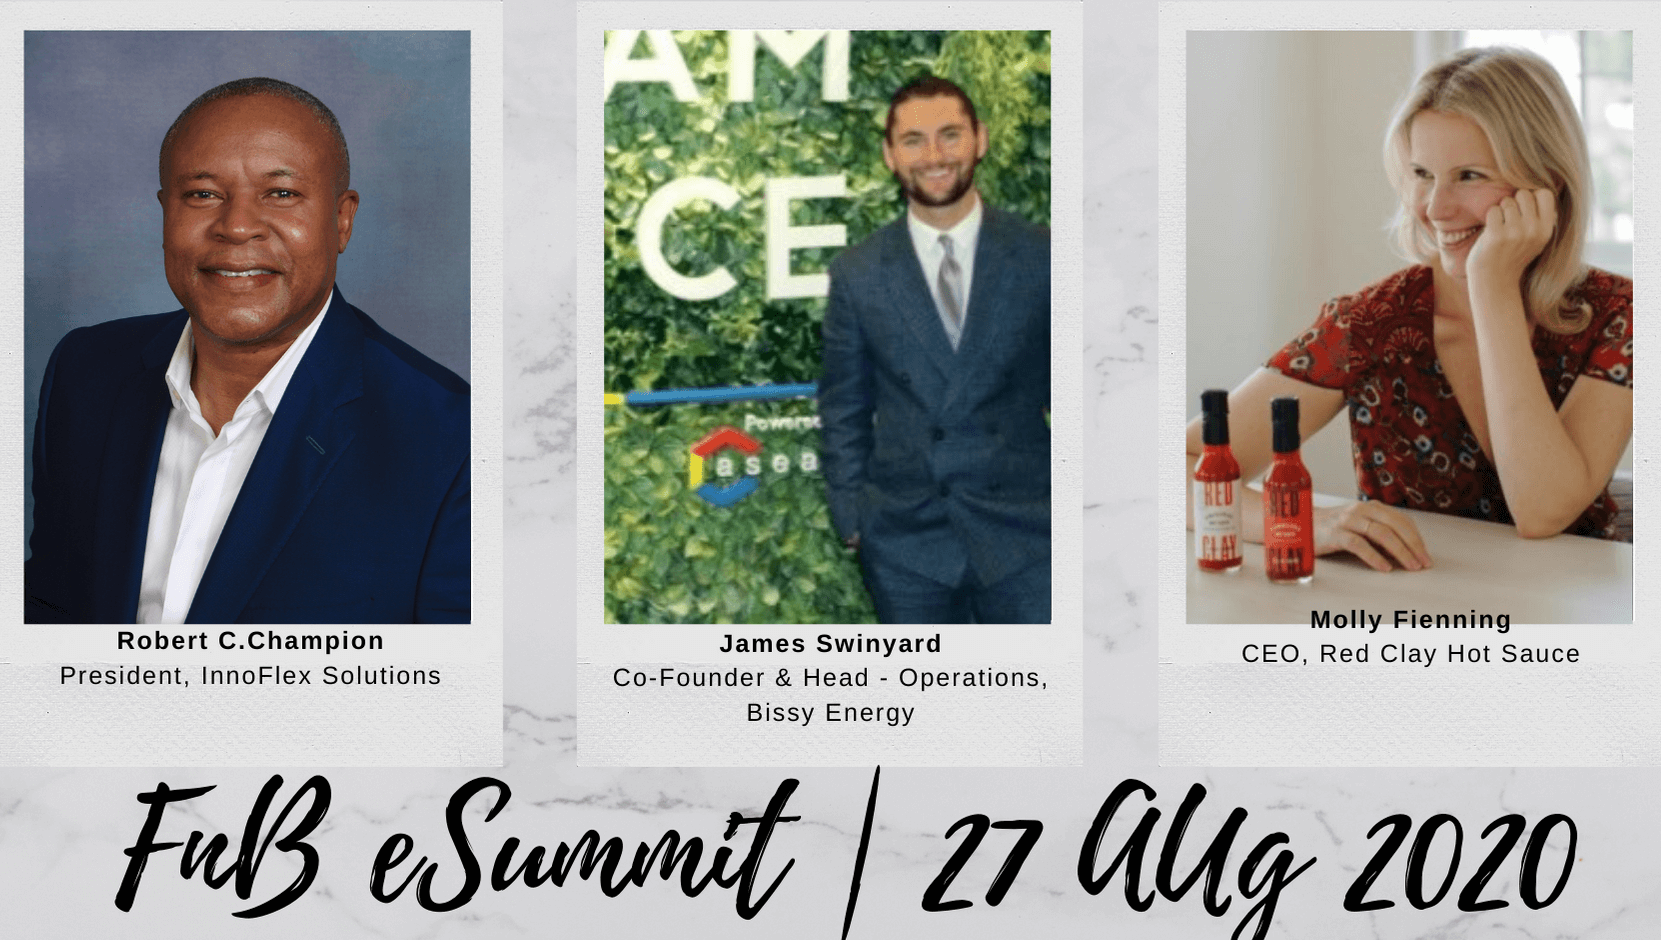 Day 4 – Session 2: F&B e-Summit 2020 (Aug 27th, 2020)